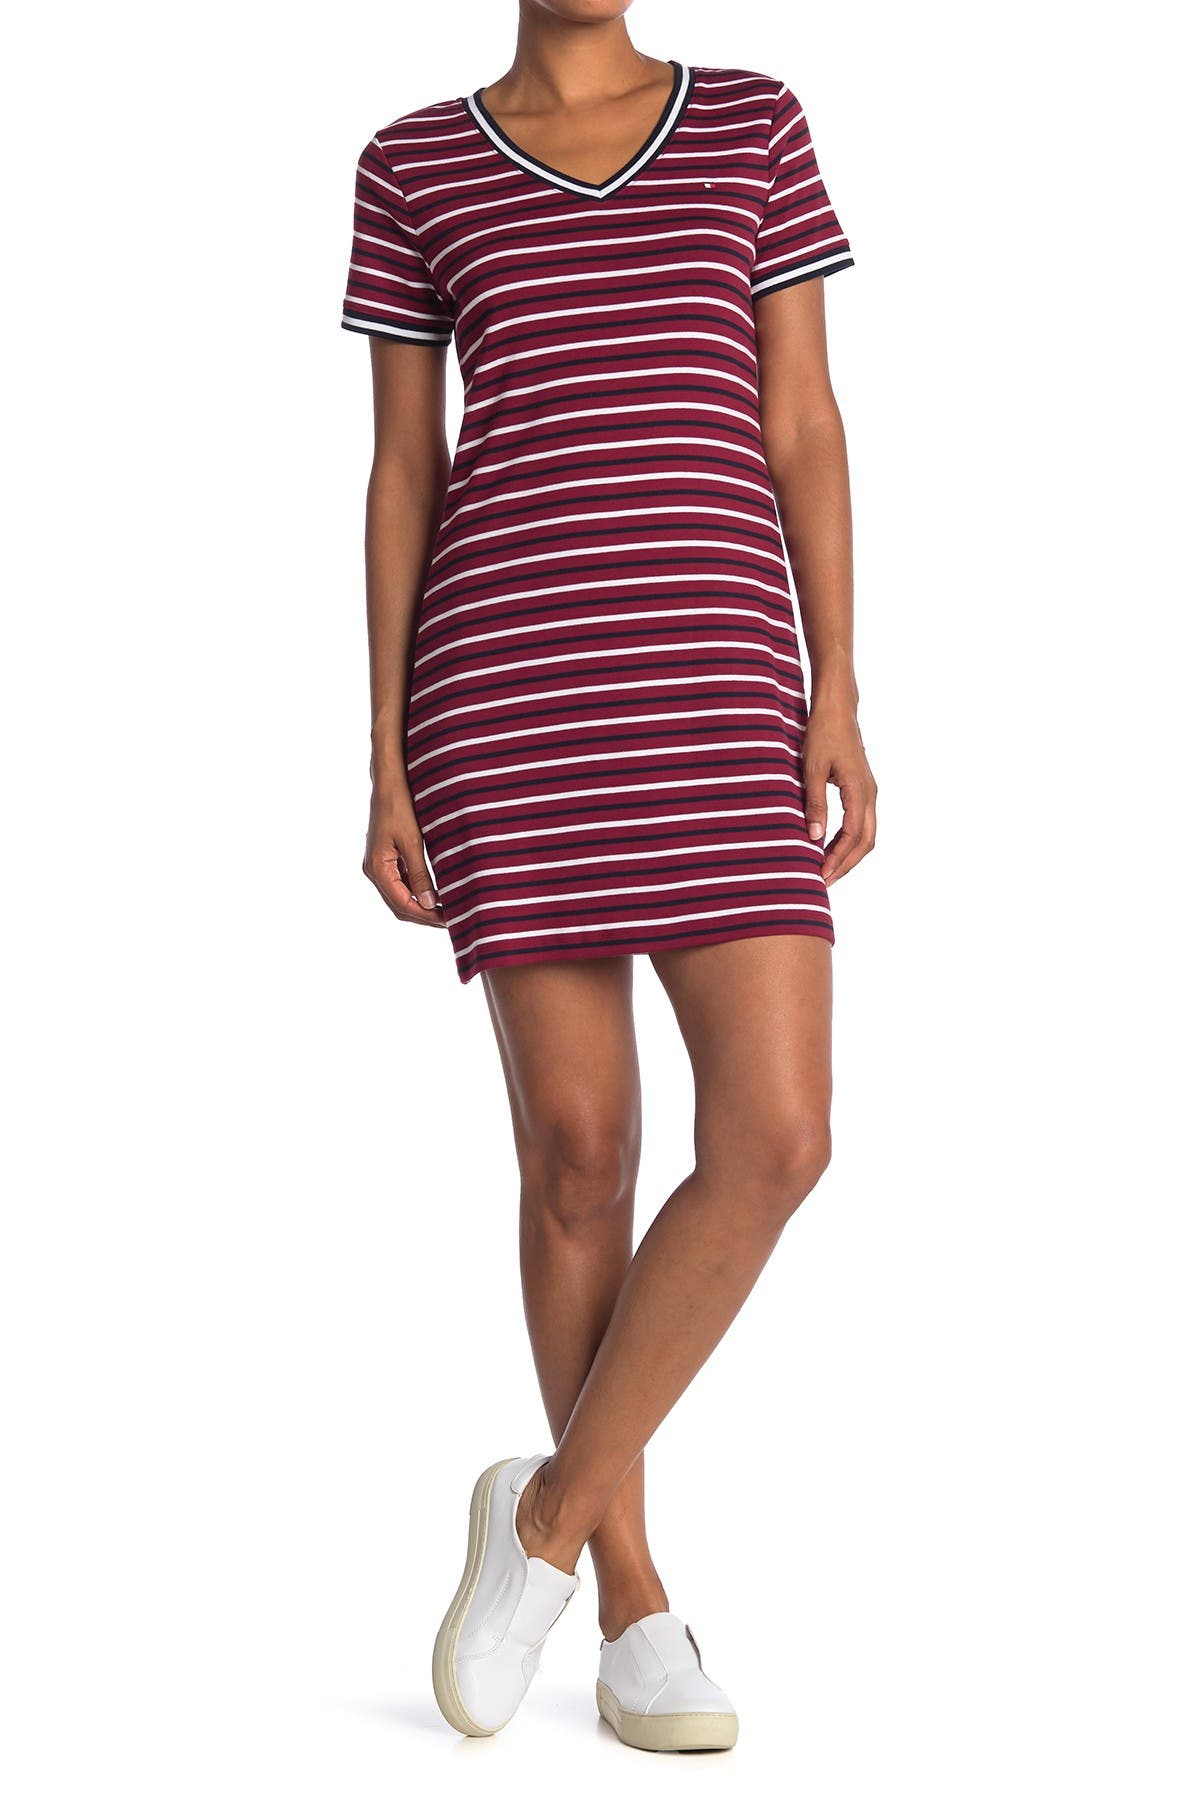 Image of Tommy Hilfiger Ideal Striped V-Neck T-Shirt Dress